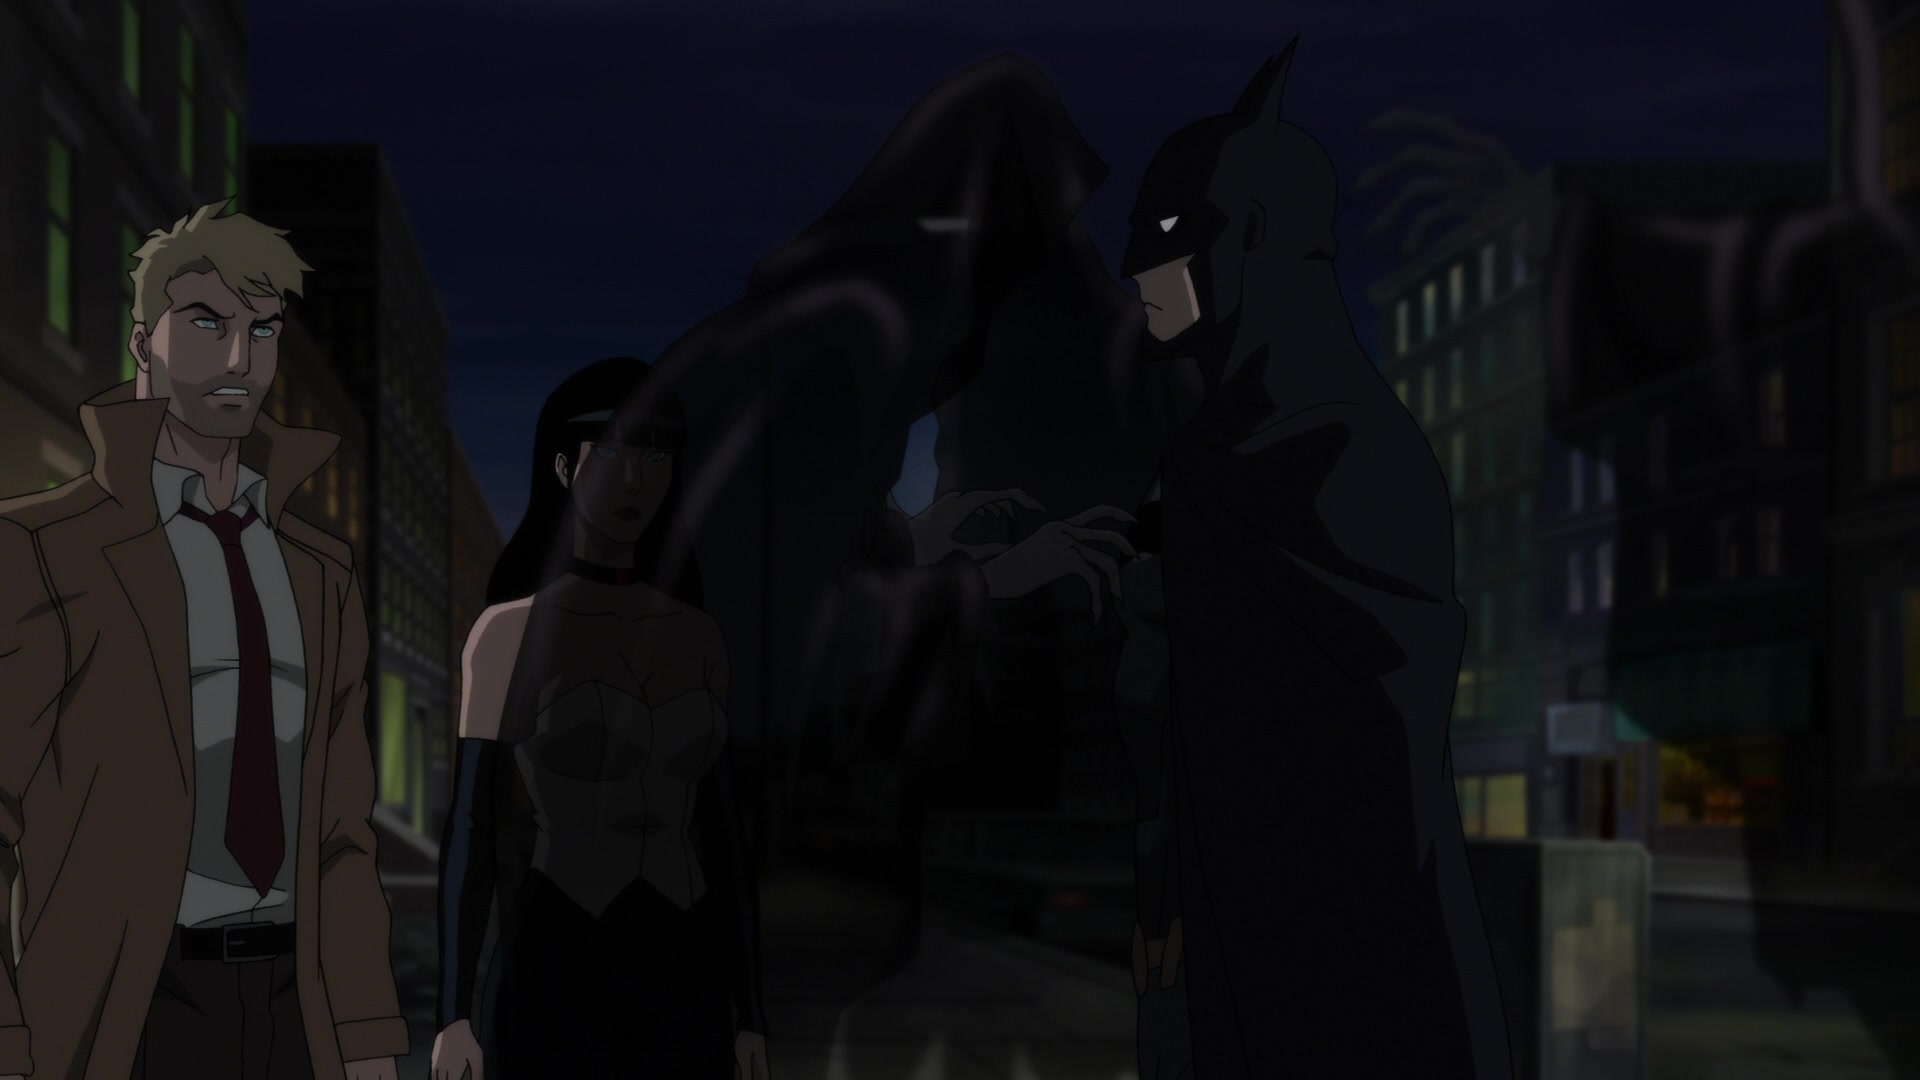 justice_league_dark_2017_screenshot_0700.jpg